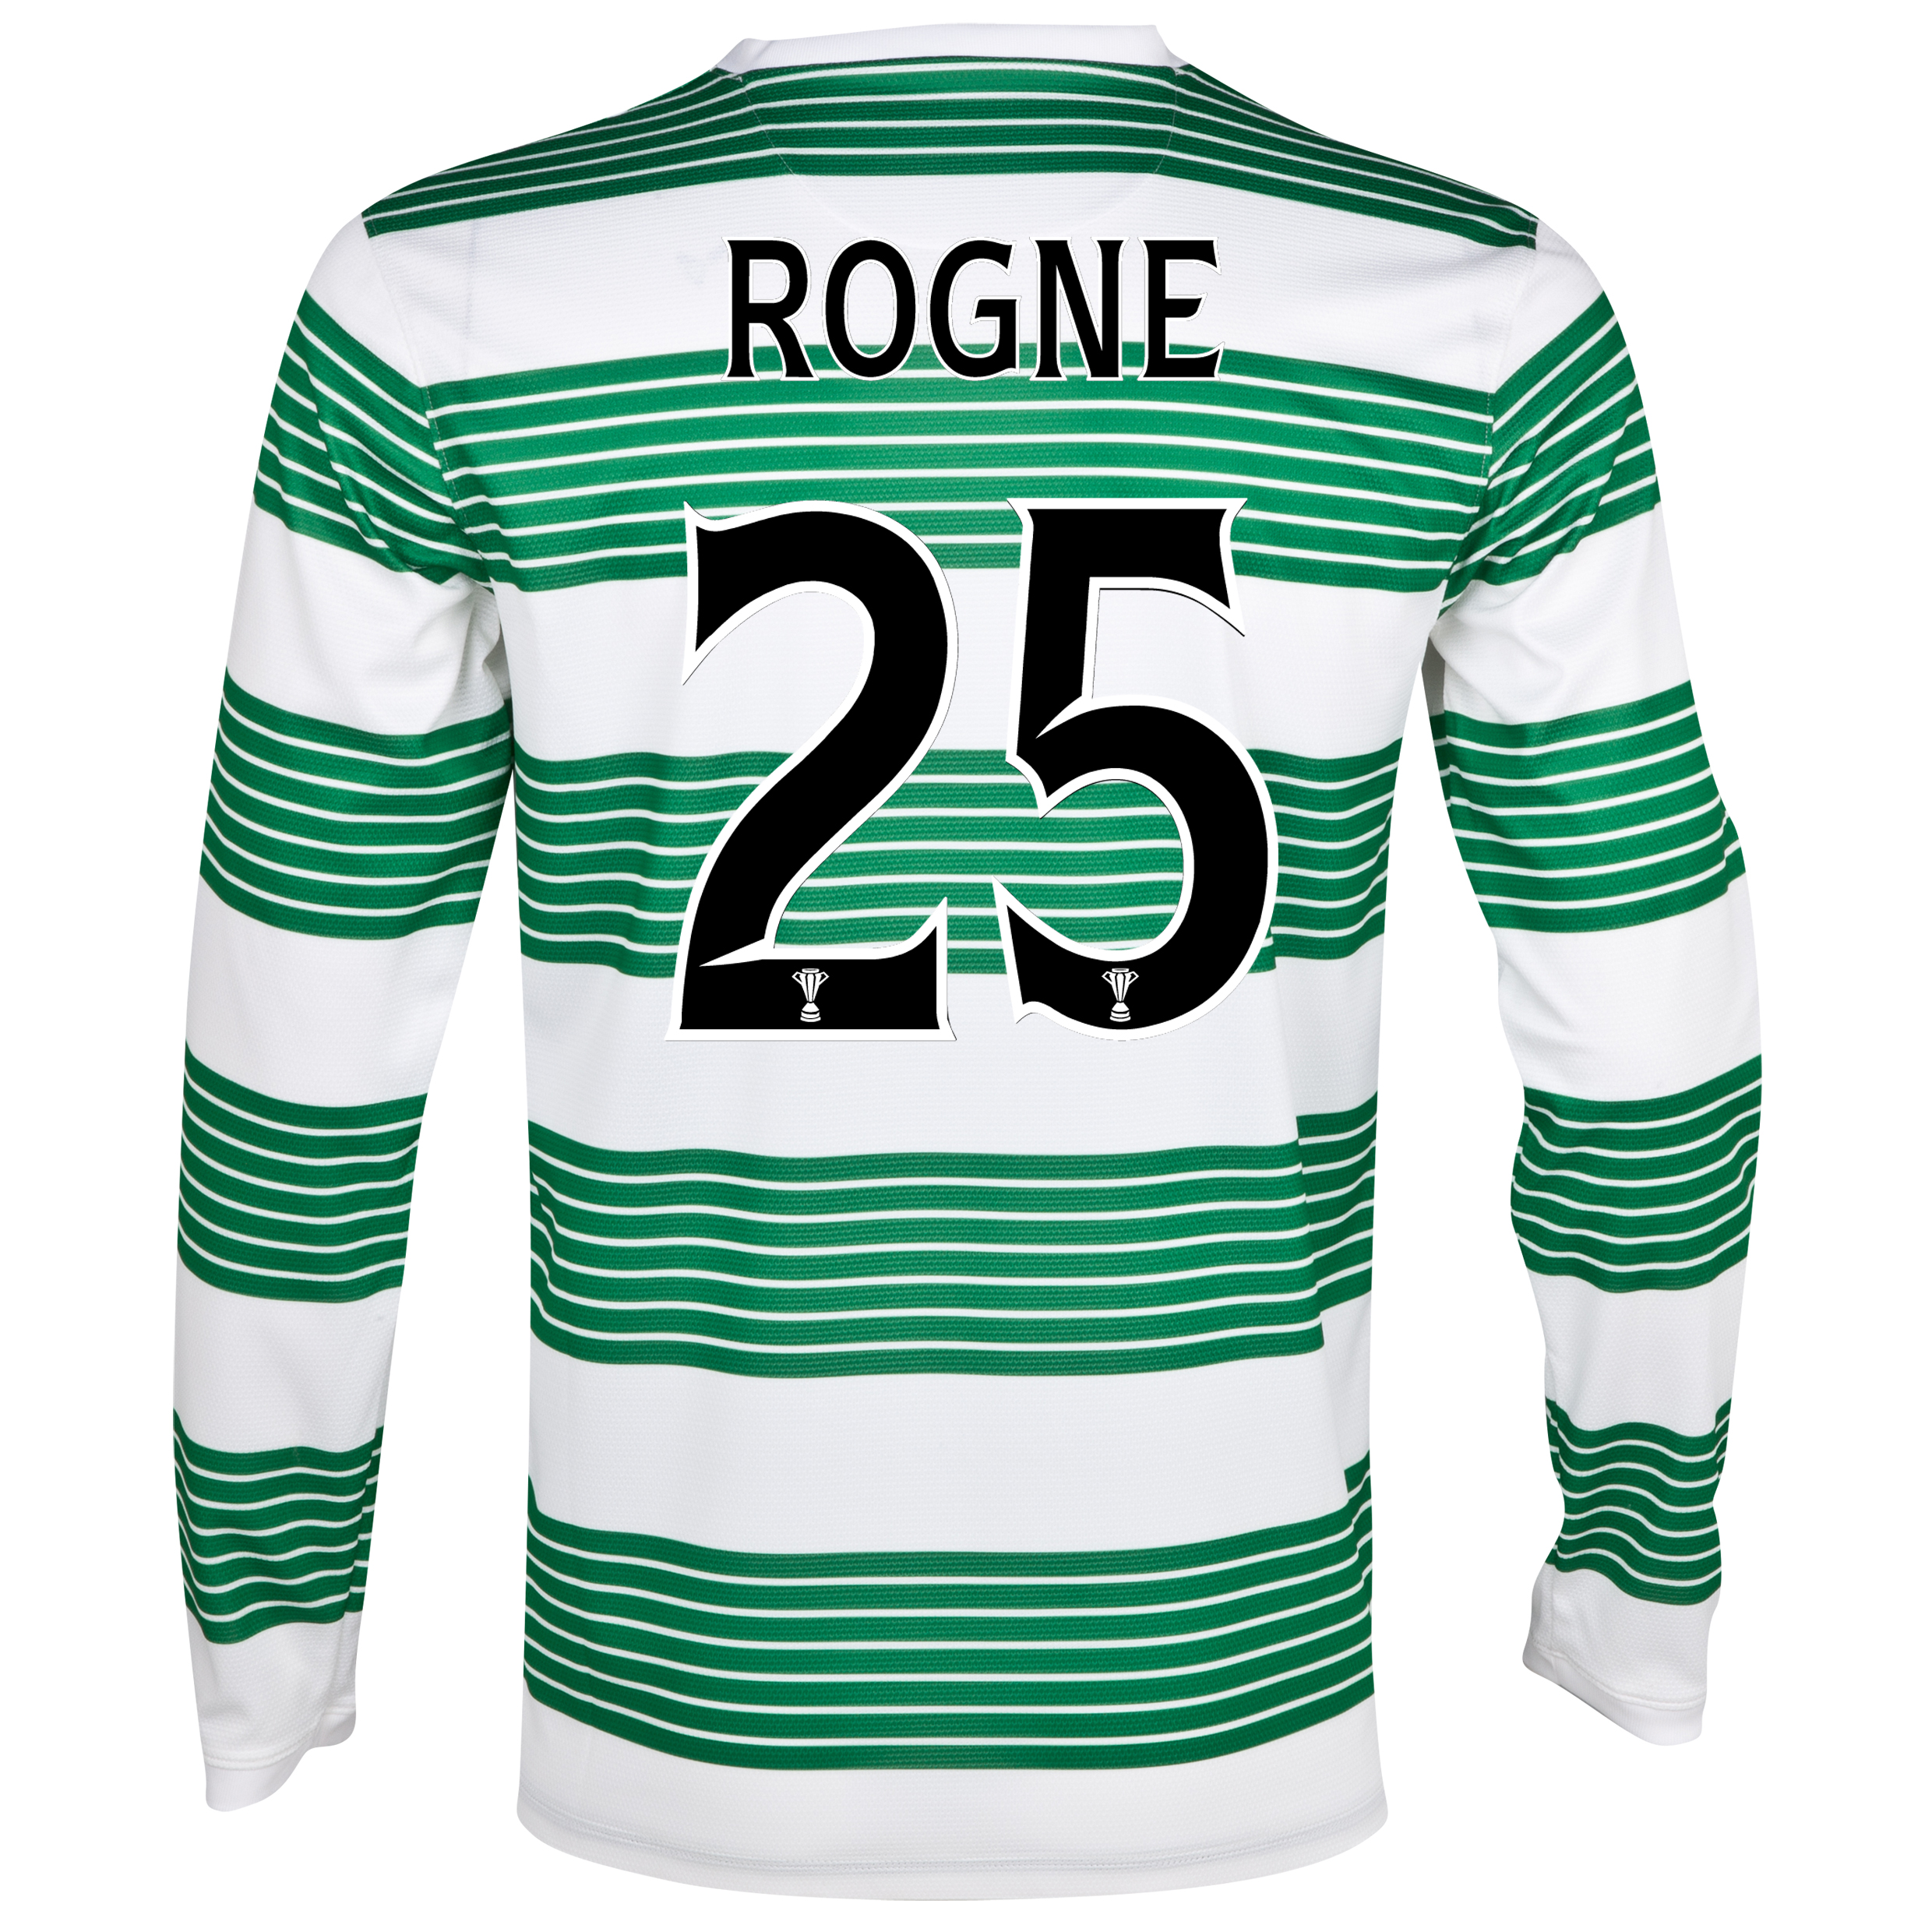 Celtic Home Shirt 2013/14 - L/S- Unsponsored with Rogne 25 printing